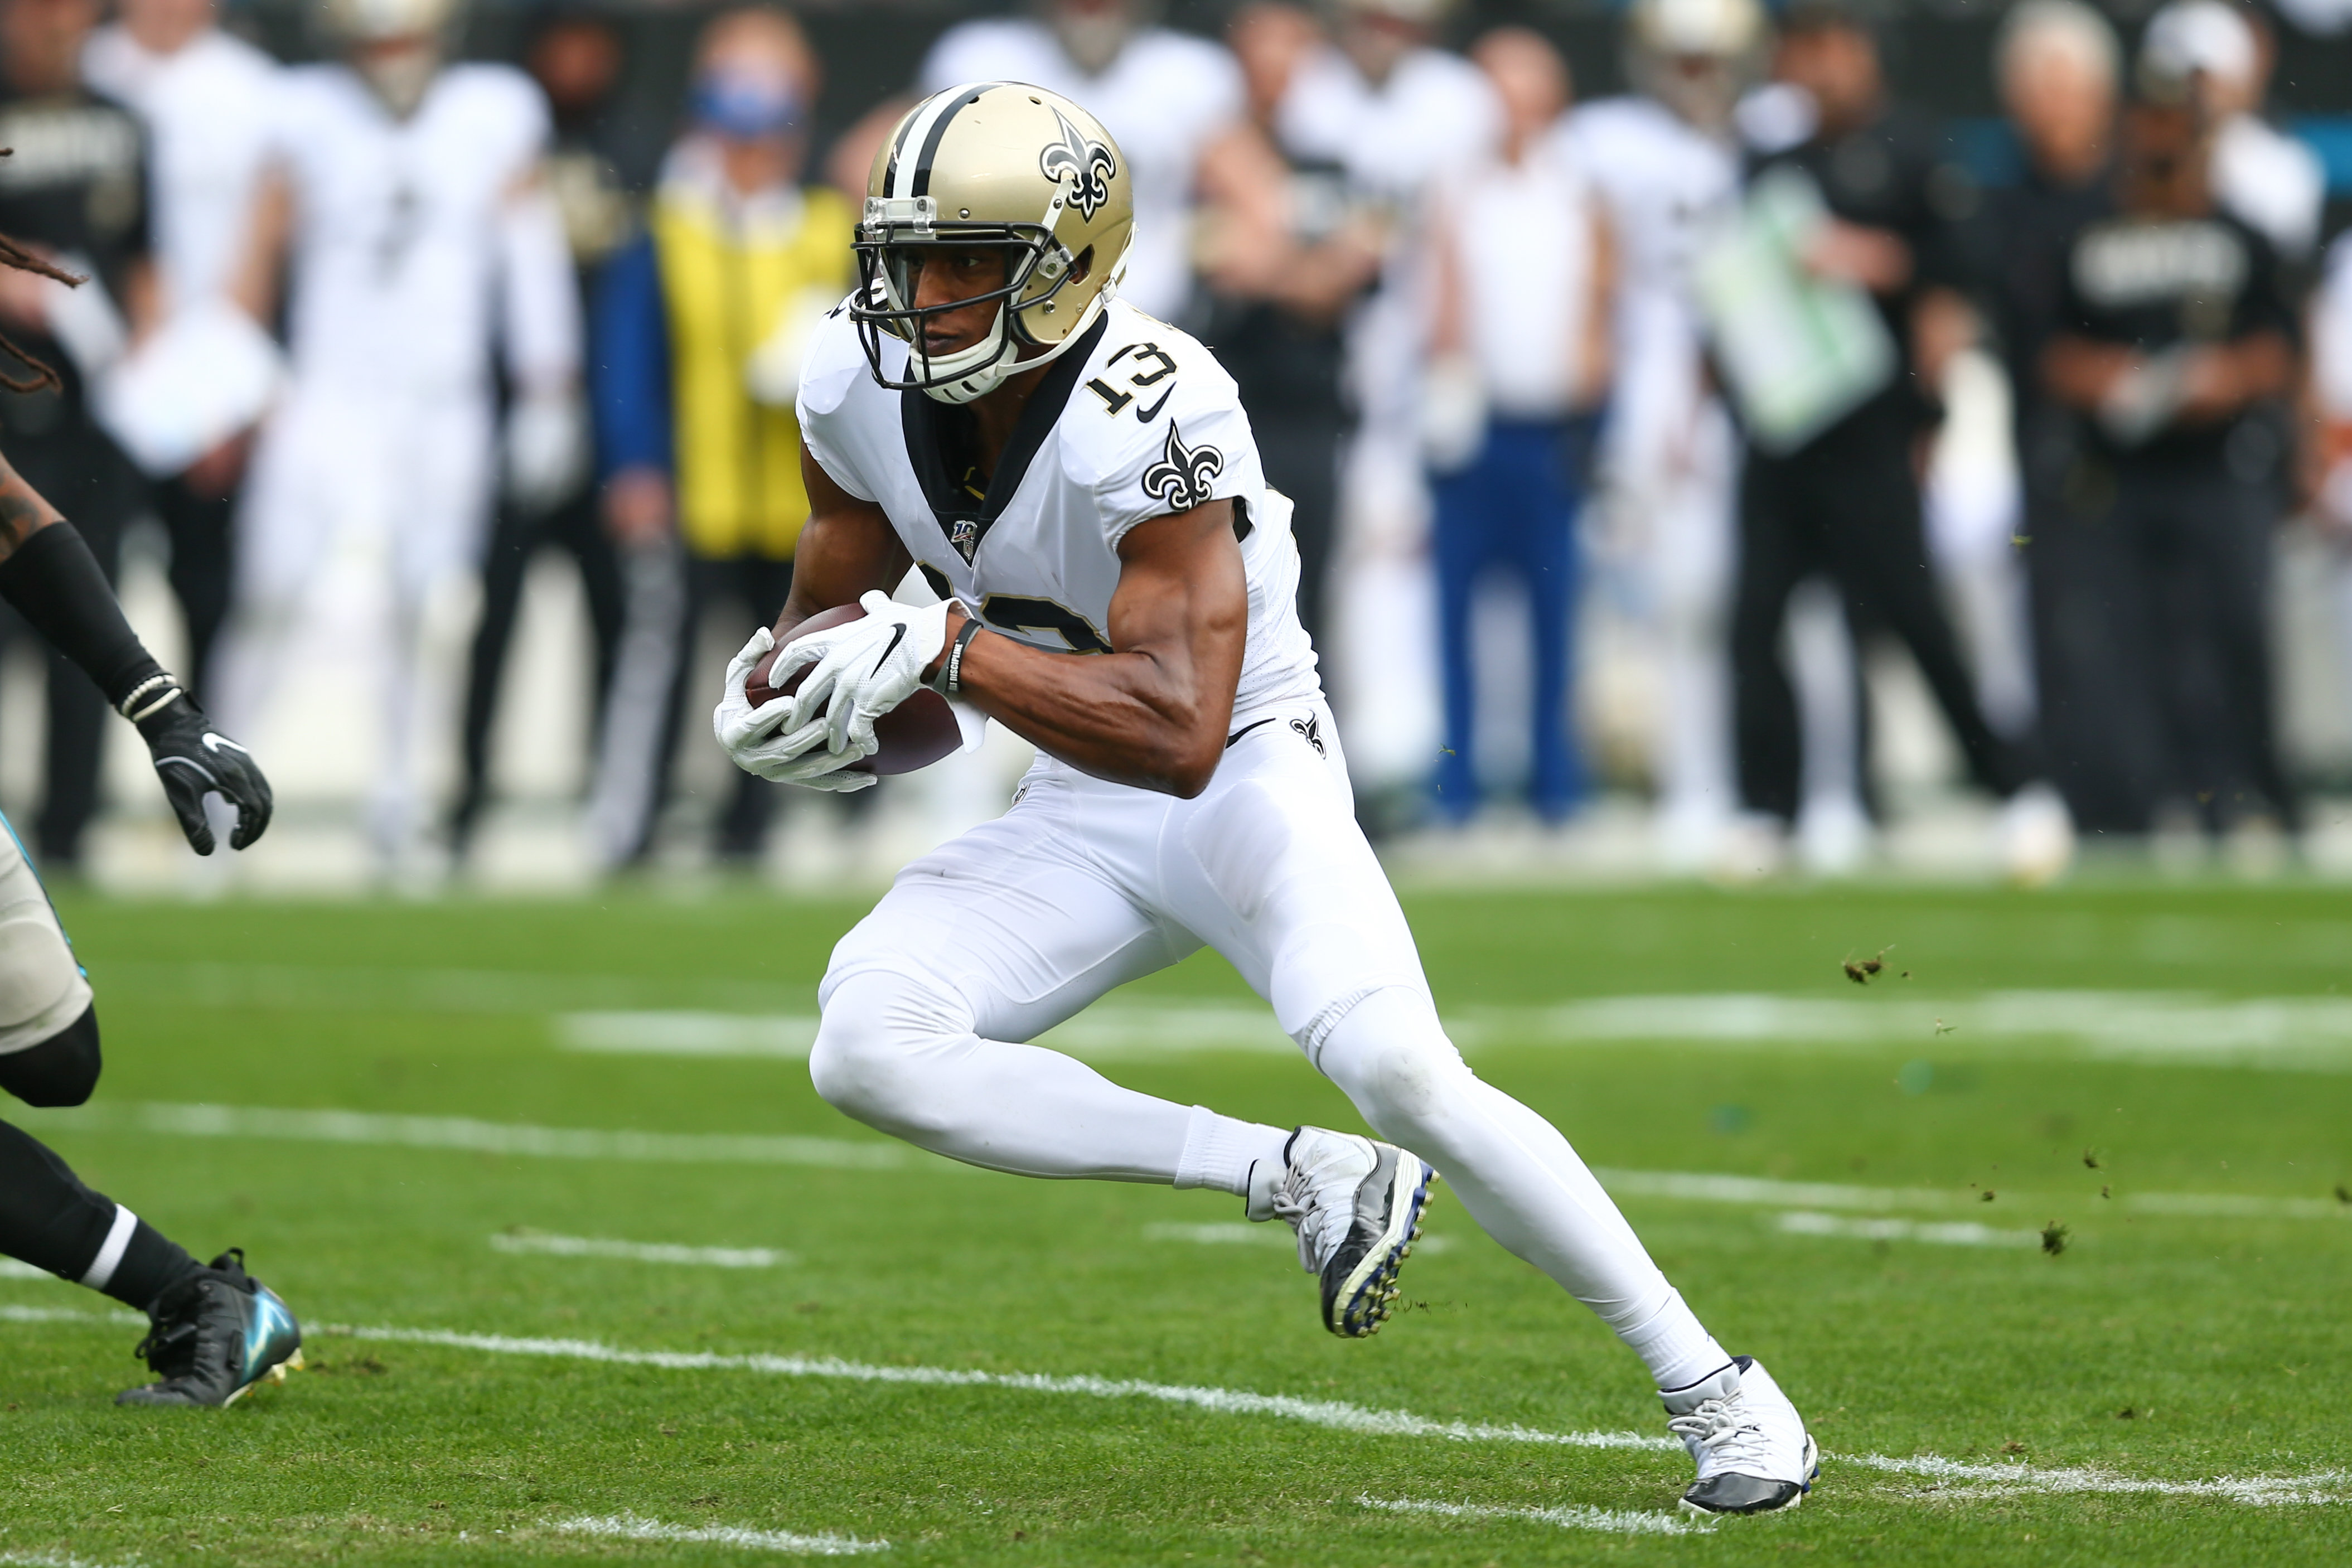 Saints wide receiver Michael Thomas runs after a reception in the first quarter against the Carolina Panthers at Bank of America Stadium.